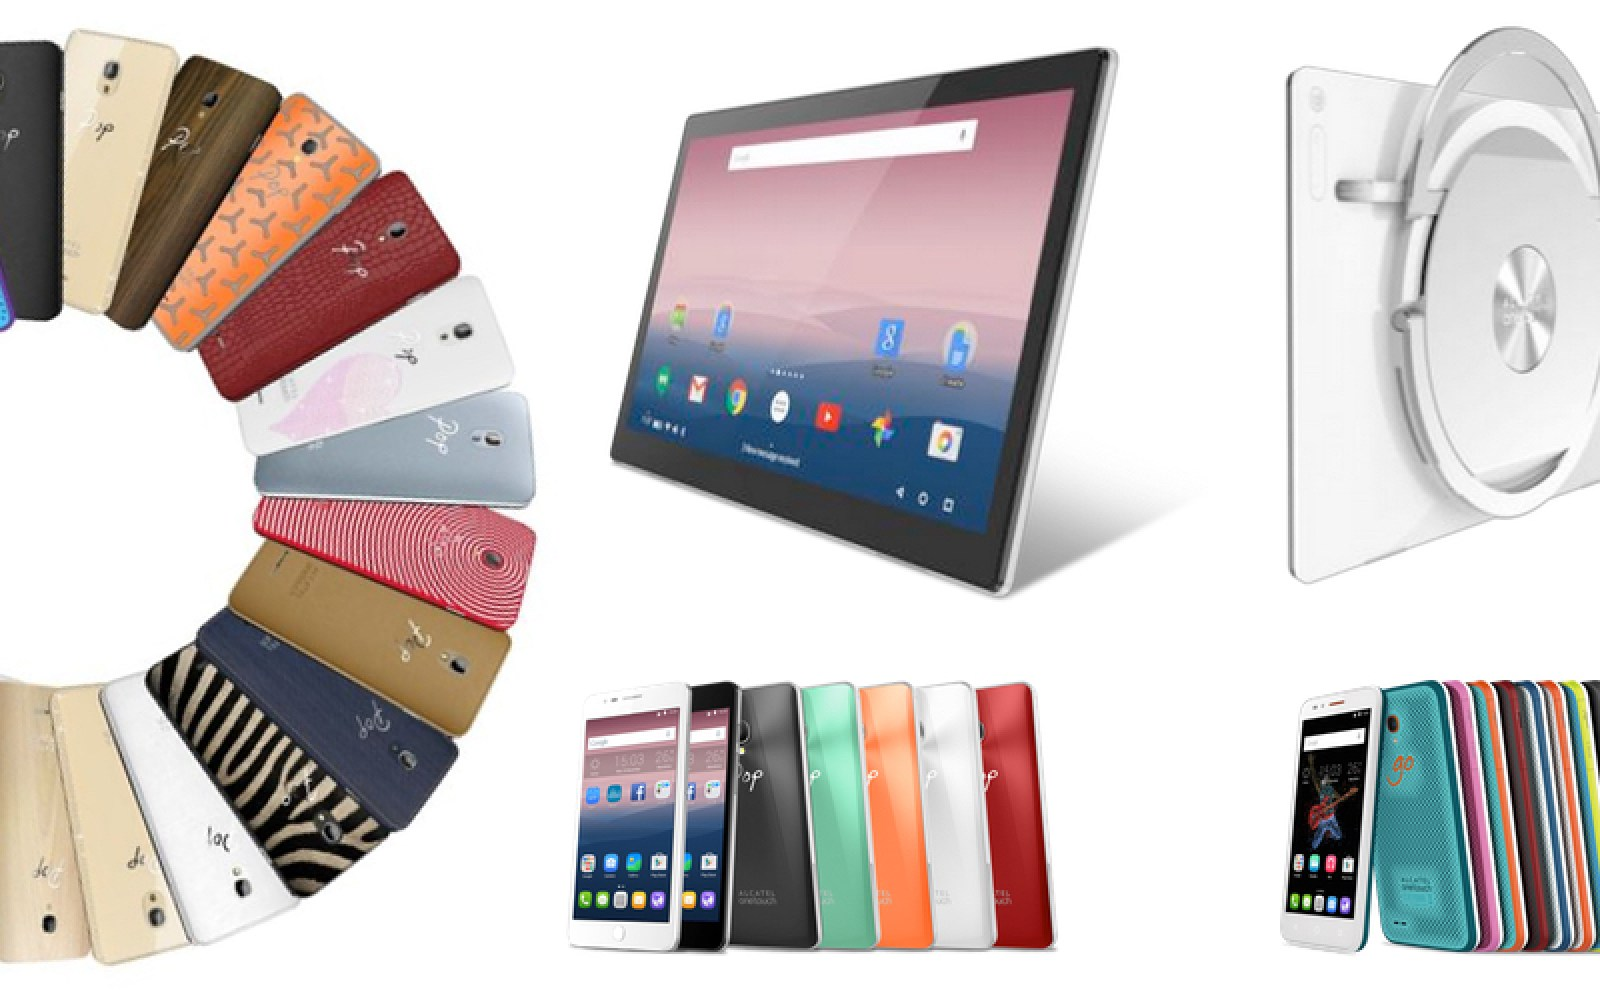 Alcatel OneTouch unveils new POP STAR with optional leather, wood backs alongside huge 17-inch Xess tablet